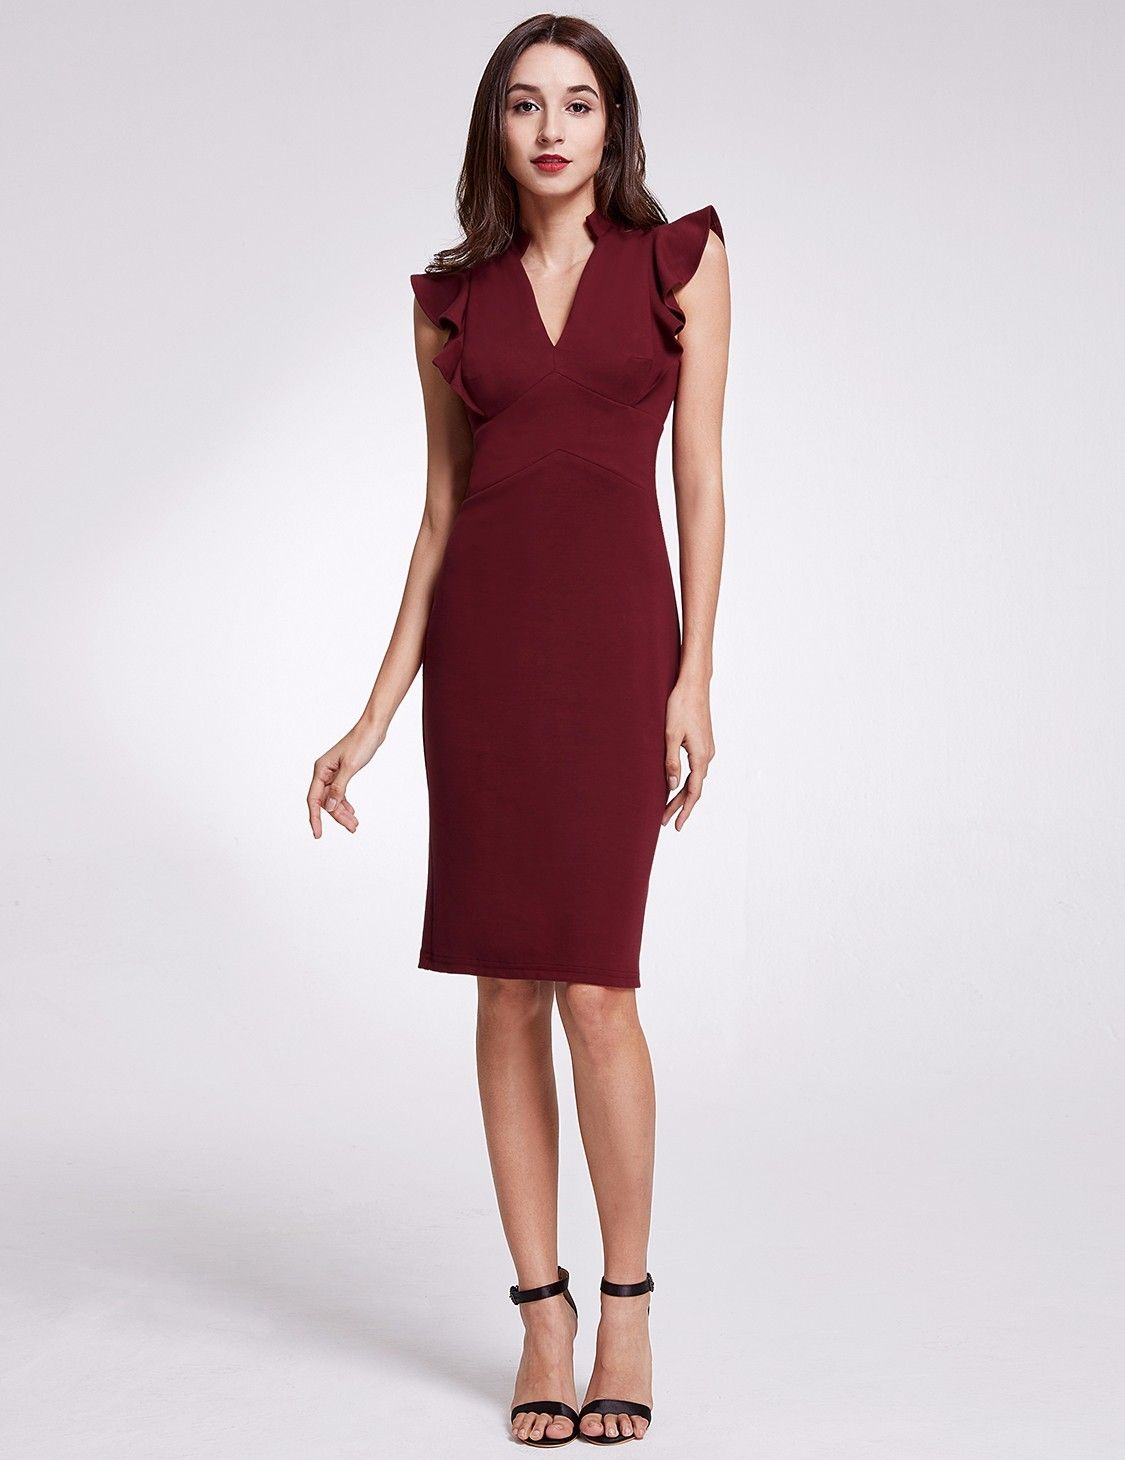 c3700a13757 Sexy Fitted Short Sheath Dress